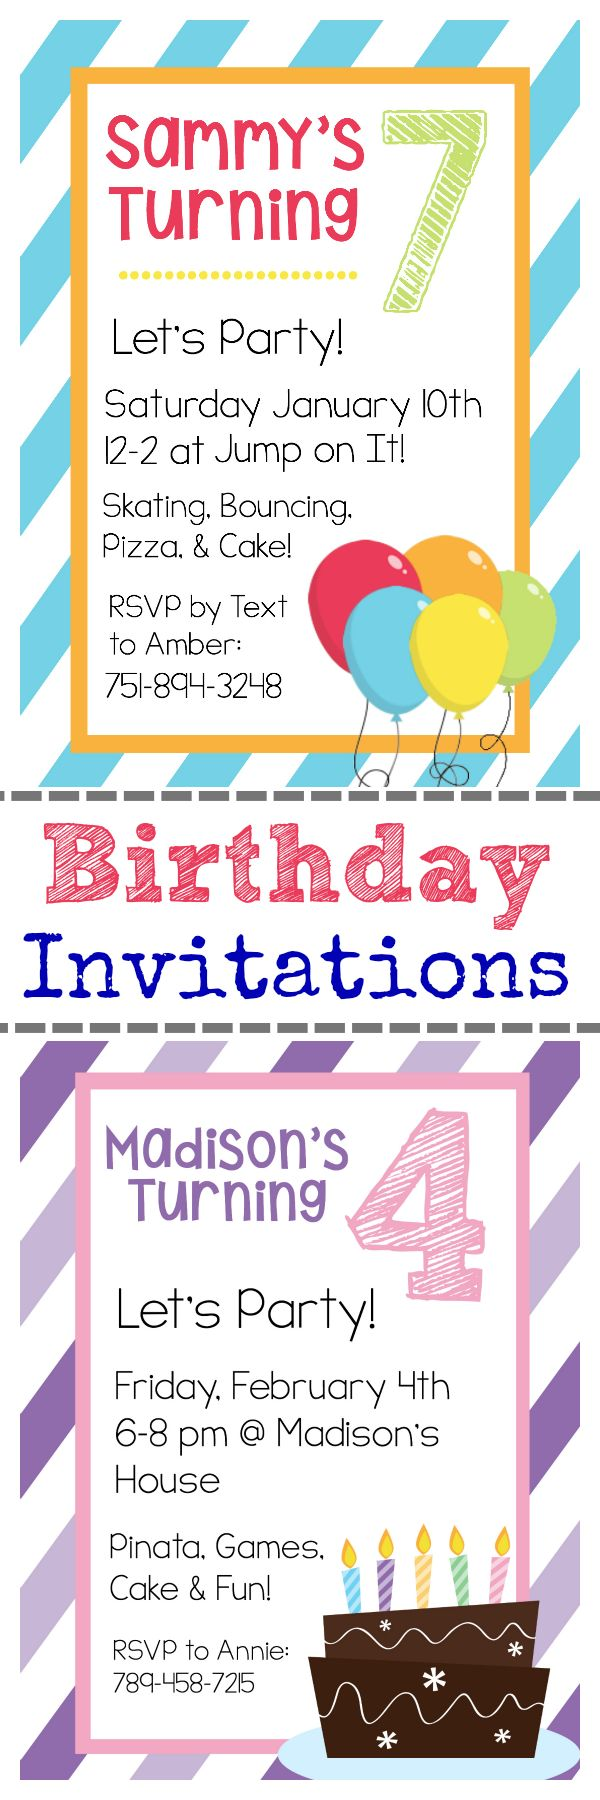 Free Printable Birthday Invitation Templates  Birthday Invitation Template Printable